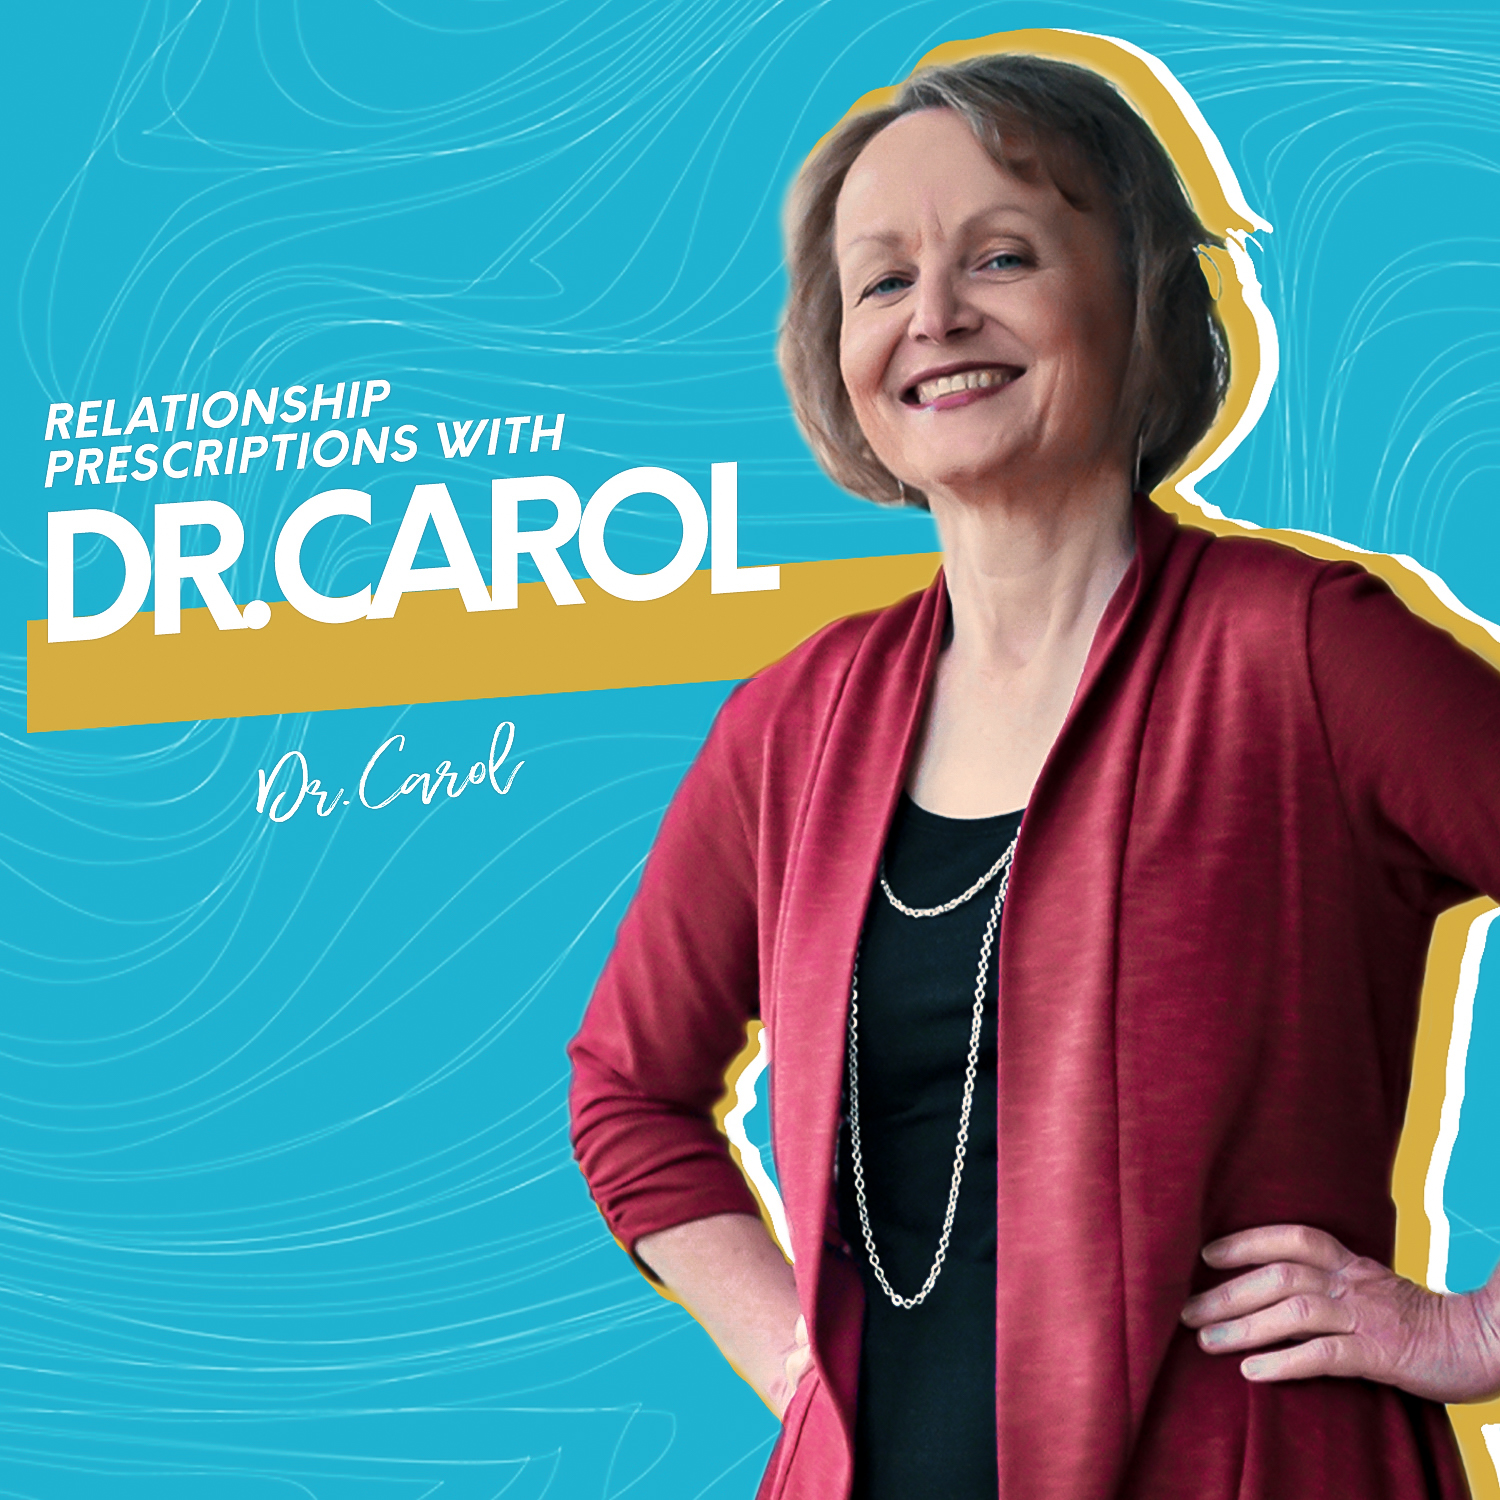 Relationship Prescriptions with Dr. Carol - How to Experience God's Presence